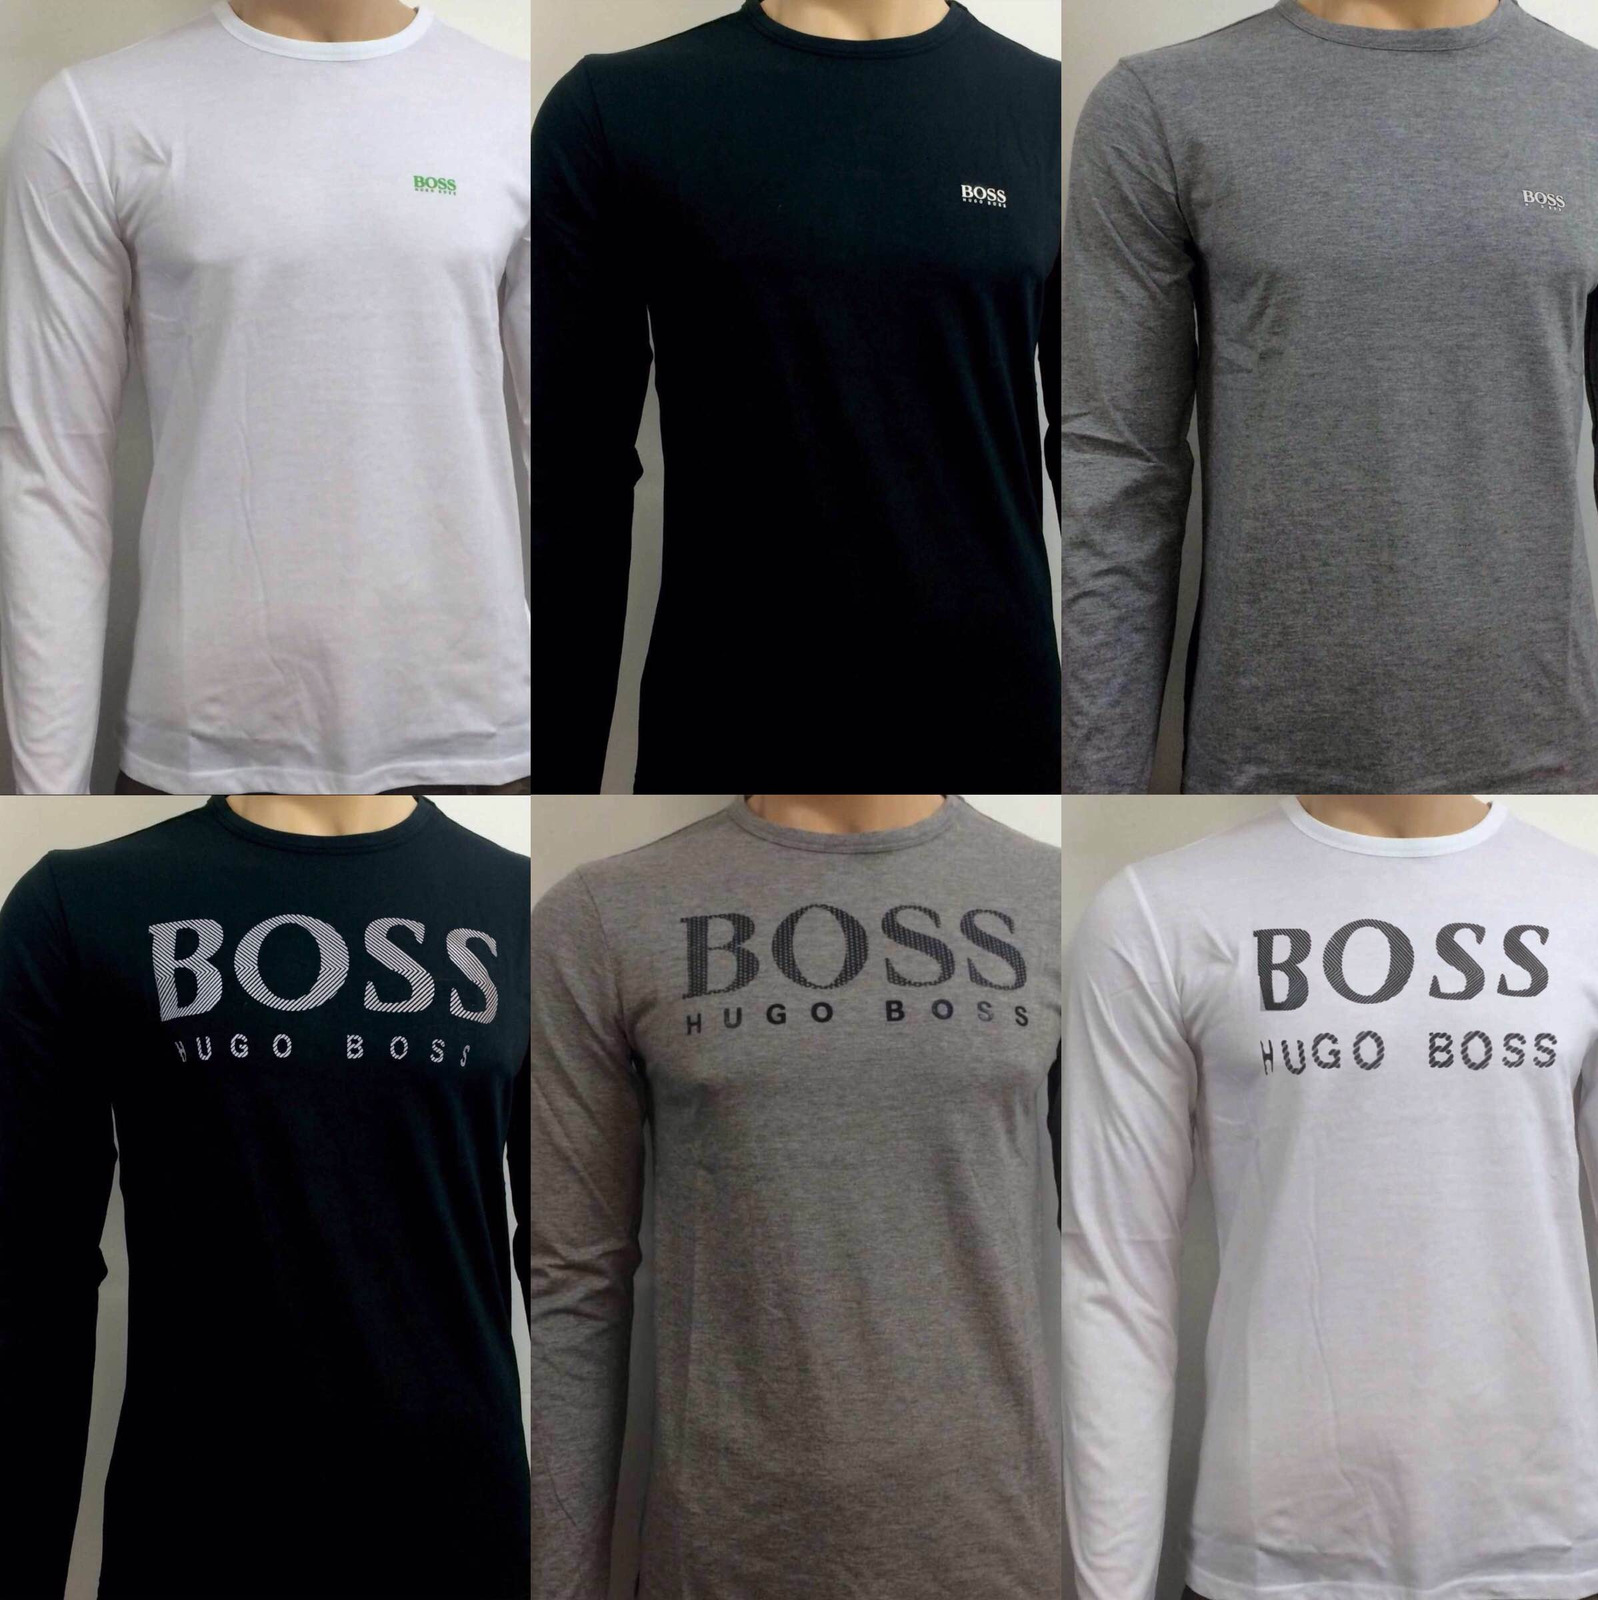 Hugo boss crew neck long sleeve t shirt for men on sale for Boss t shirt sale